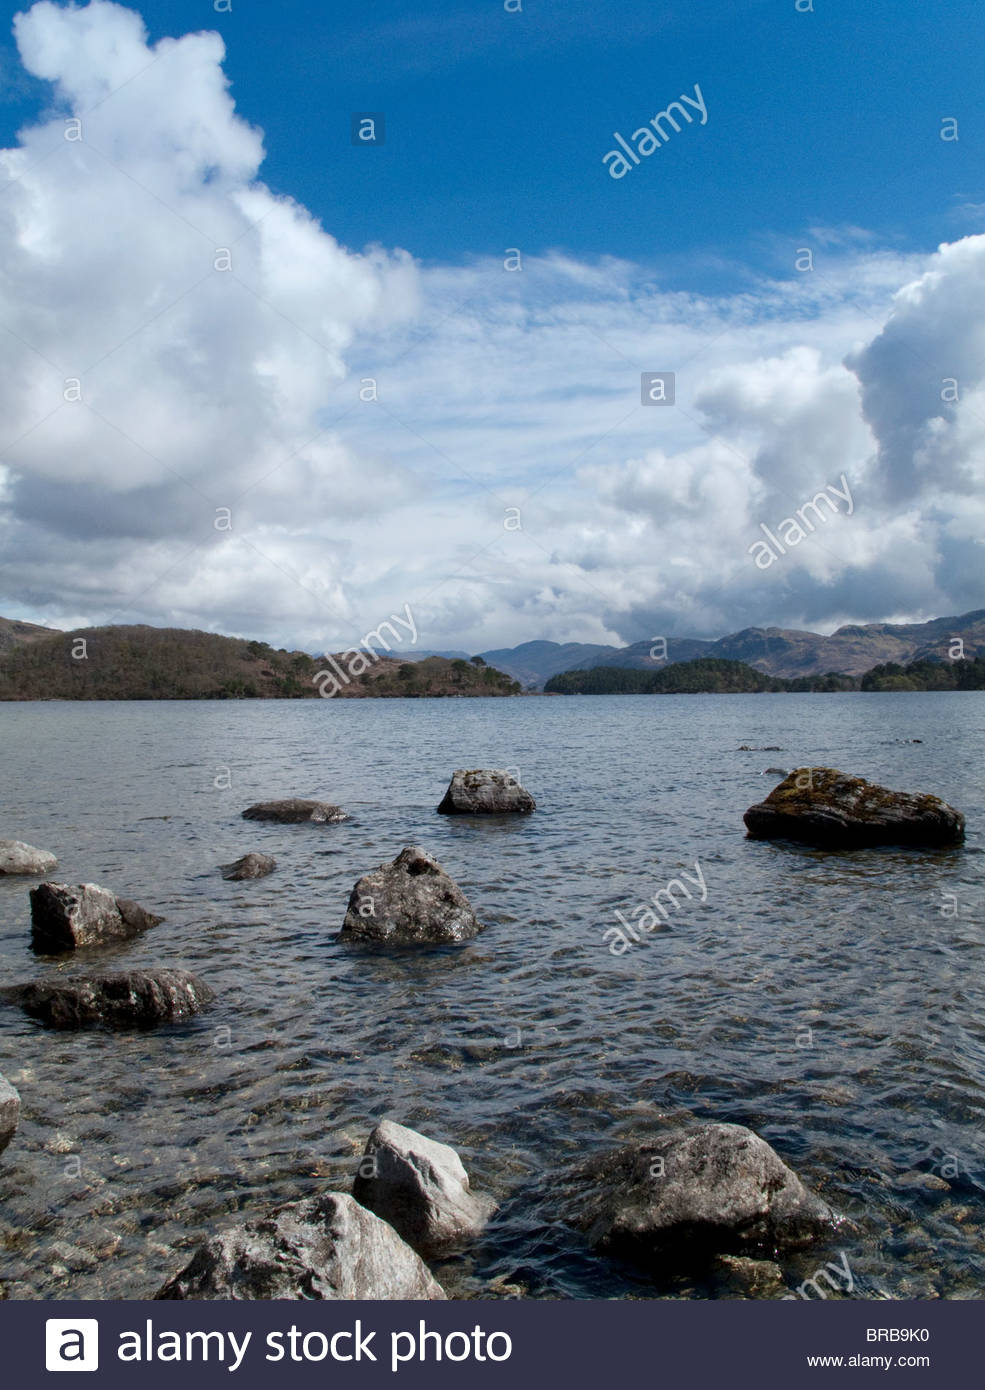 Rock protruding from ocean with land in background - Stock Image